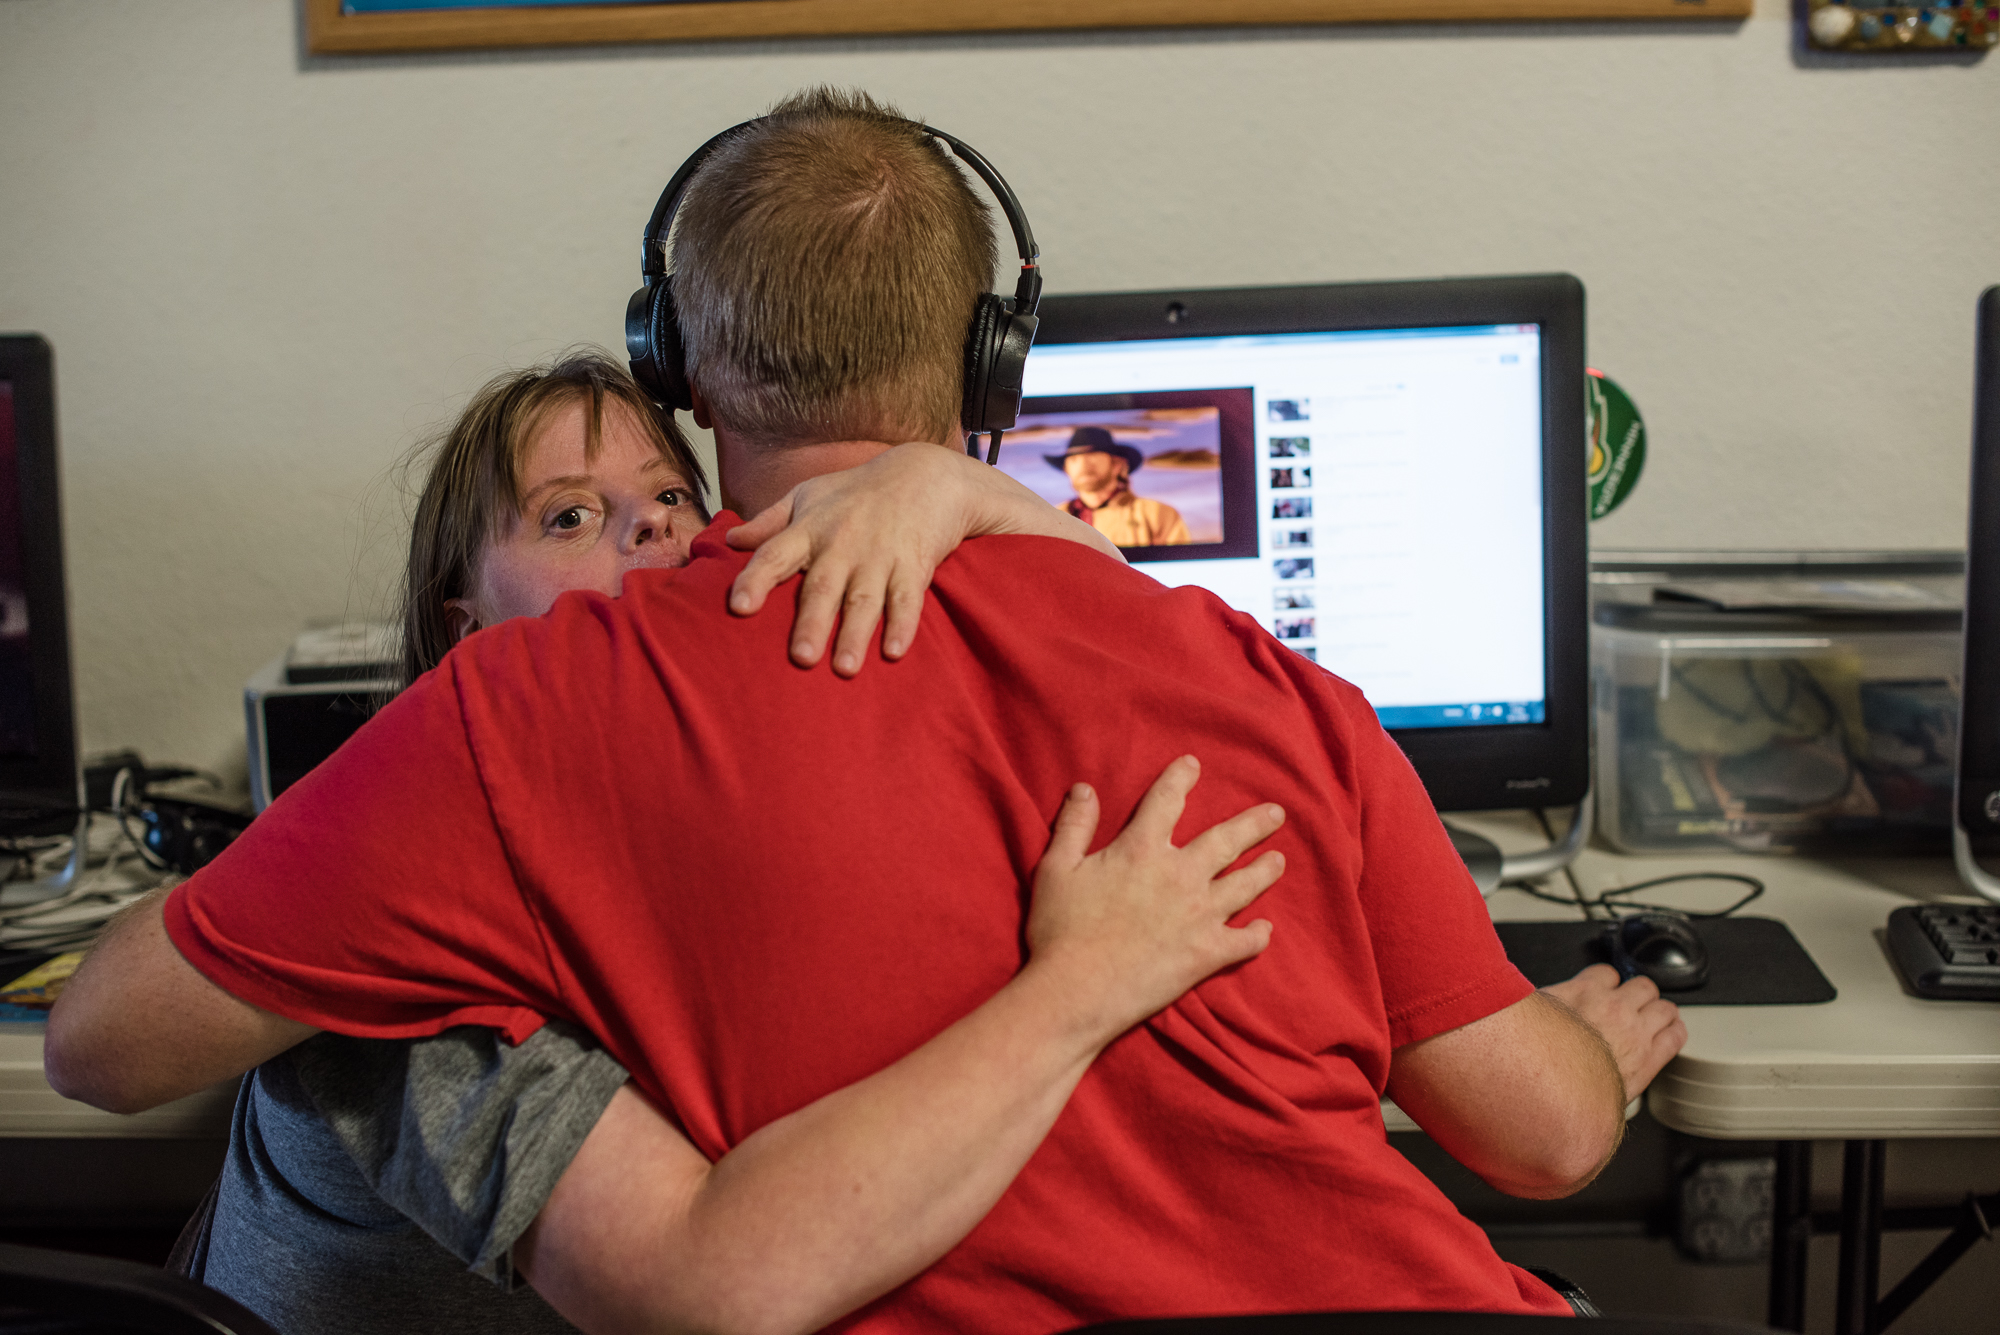 Krysta holds Nathaniel, as he watches a video during the workshop they attend daily.